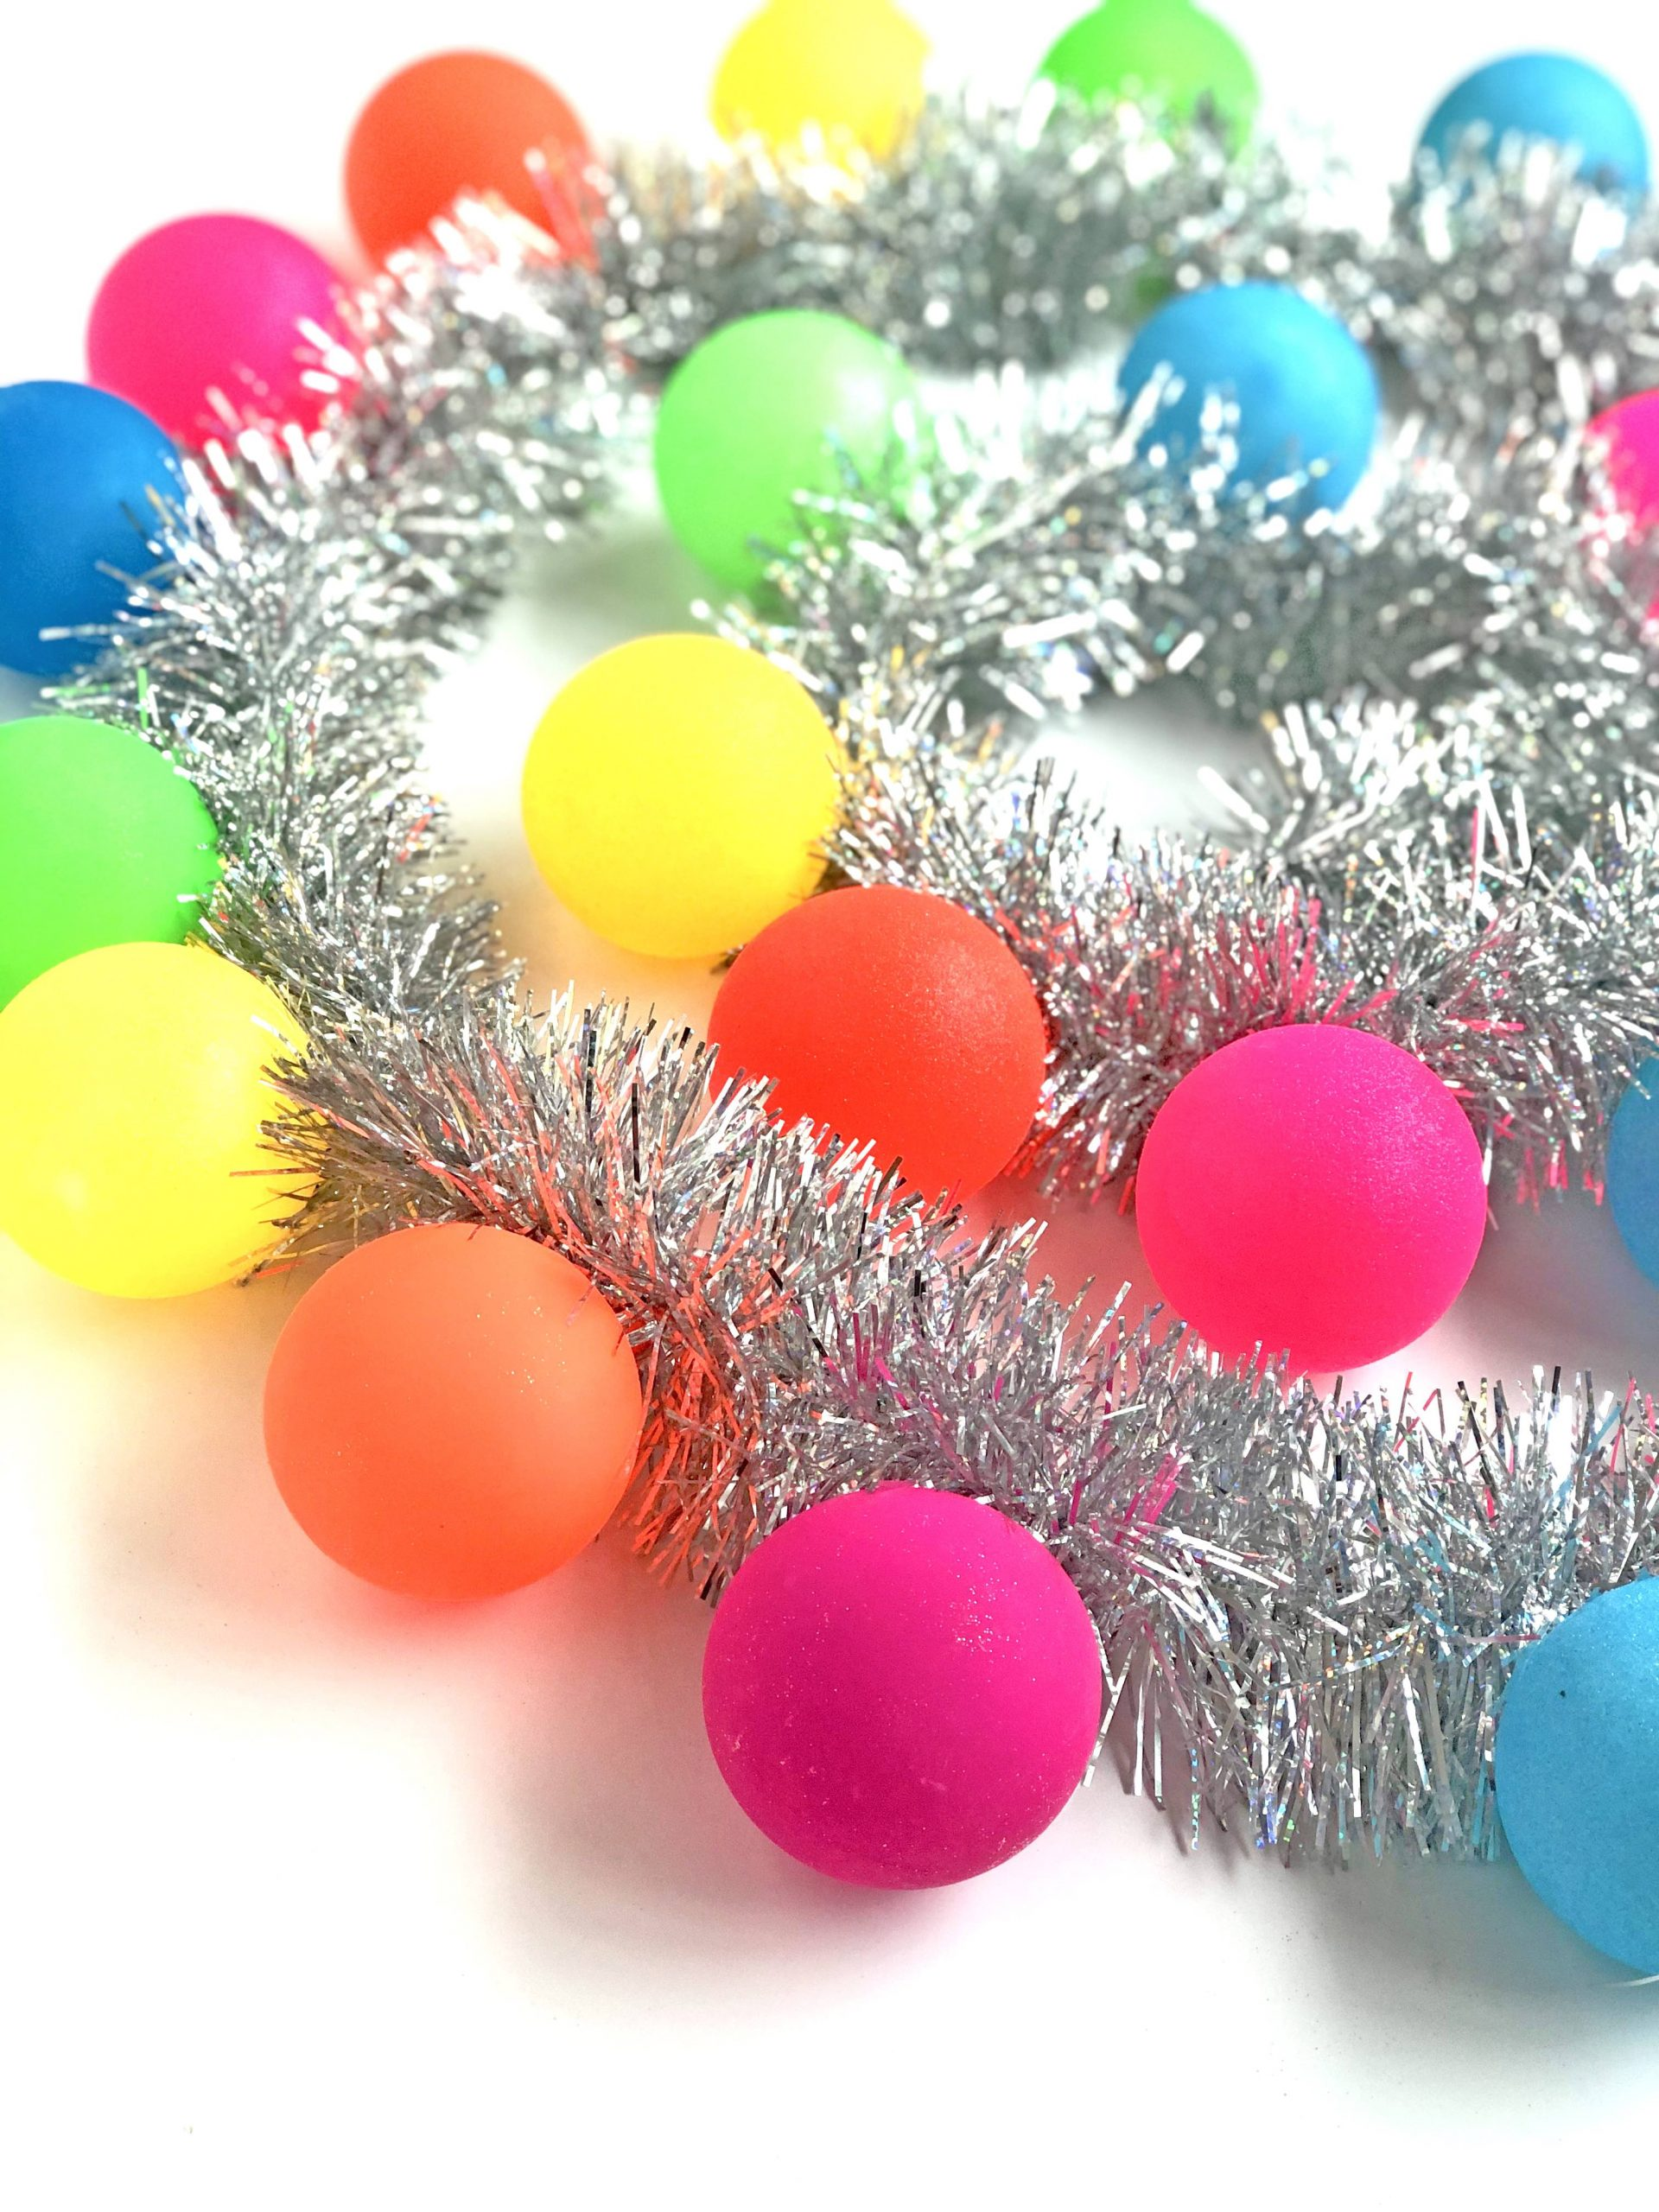 Colorful ornaments for Christmas